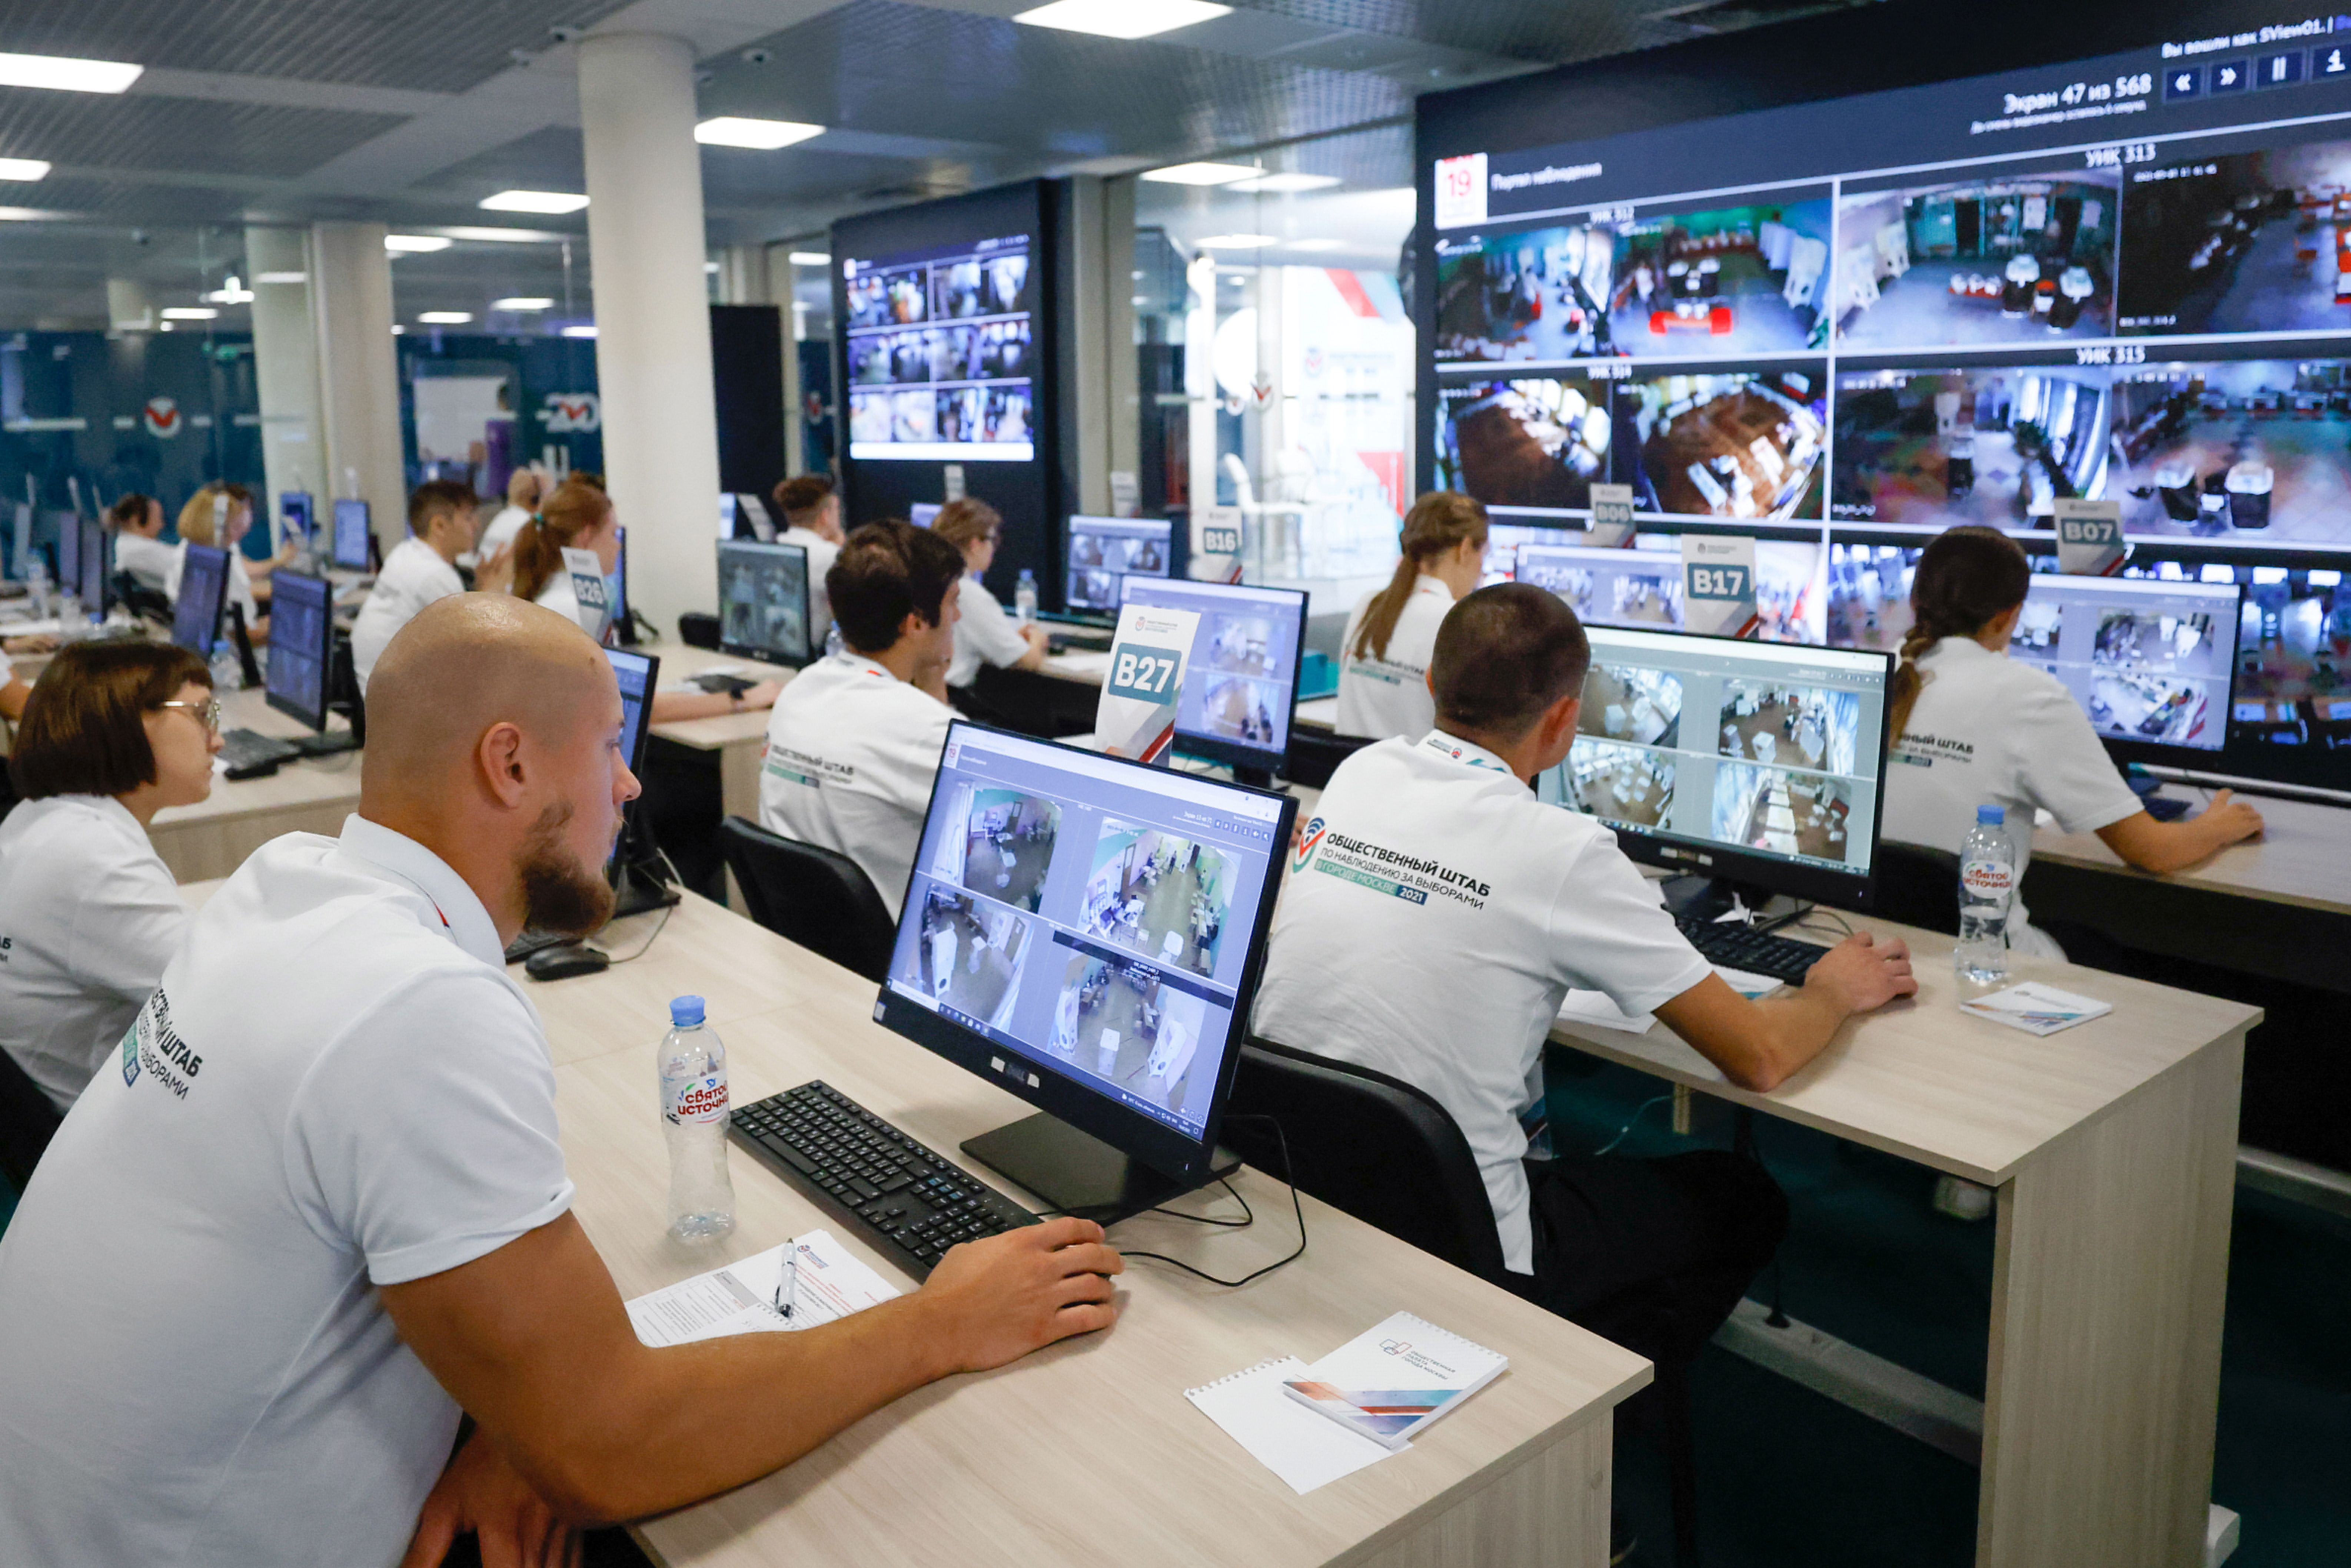 Observers watch a live broadcast from polling stations at the Moscow Public Election Monitoring Center during the second day of a three-day long vote in parliamentary elections in Moscow, Russia September 18, 2021. REUTERS/Evgenia Novozhenina